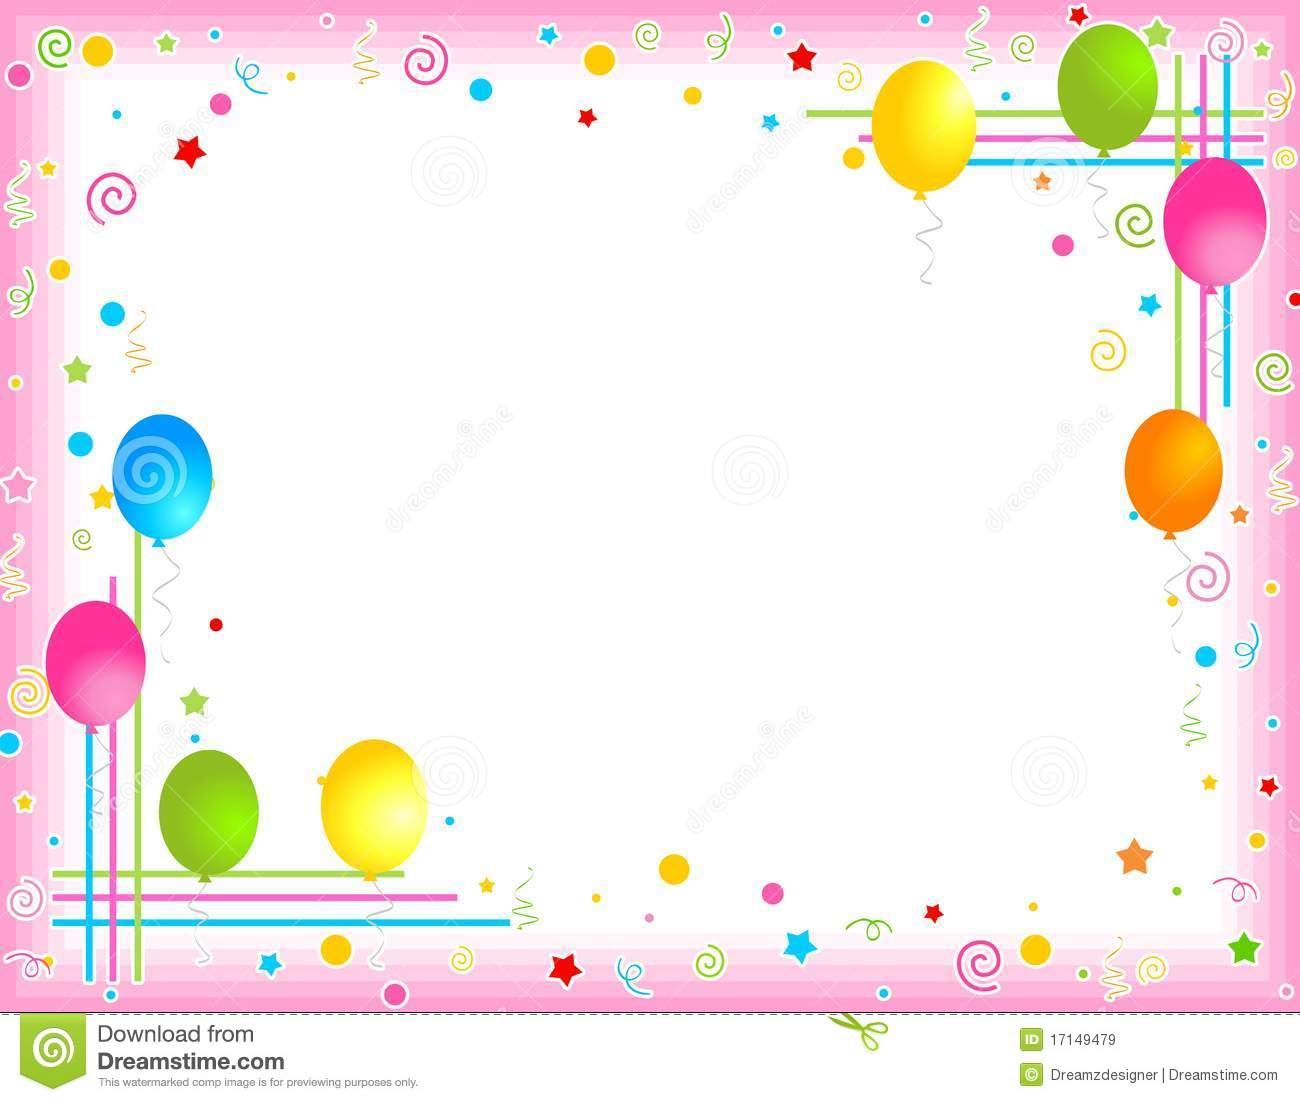 page borders for birthdays ; best-party-borders-for-invitations-balloons-border-frame-invitation-card-stock-illustration-image